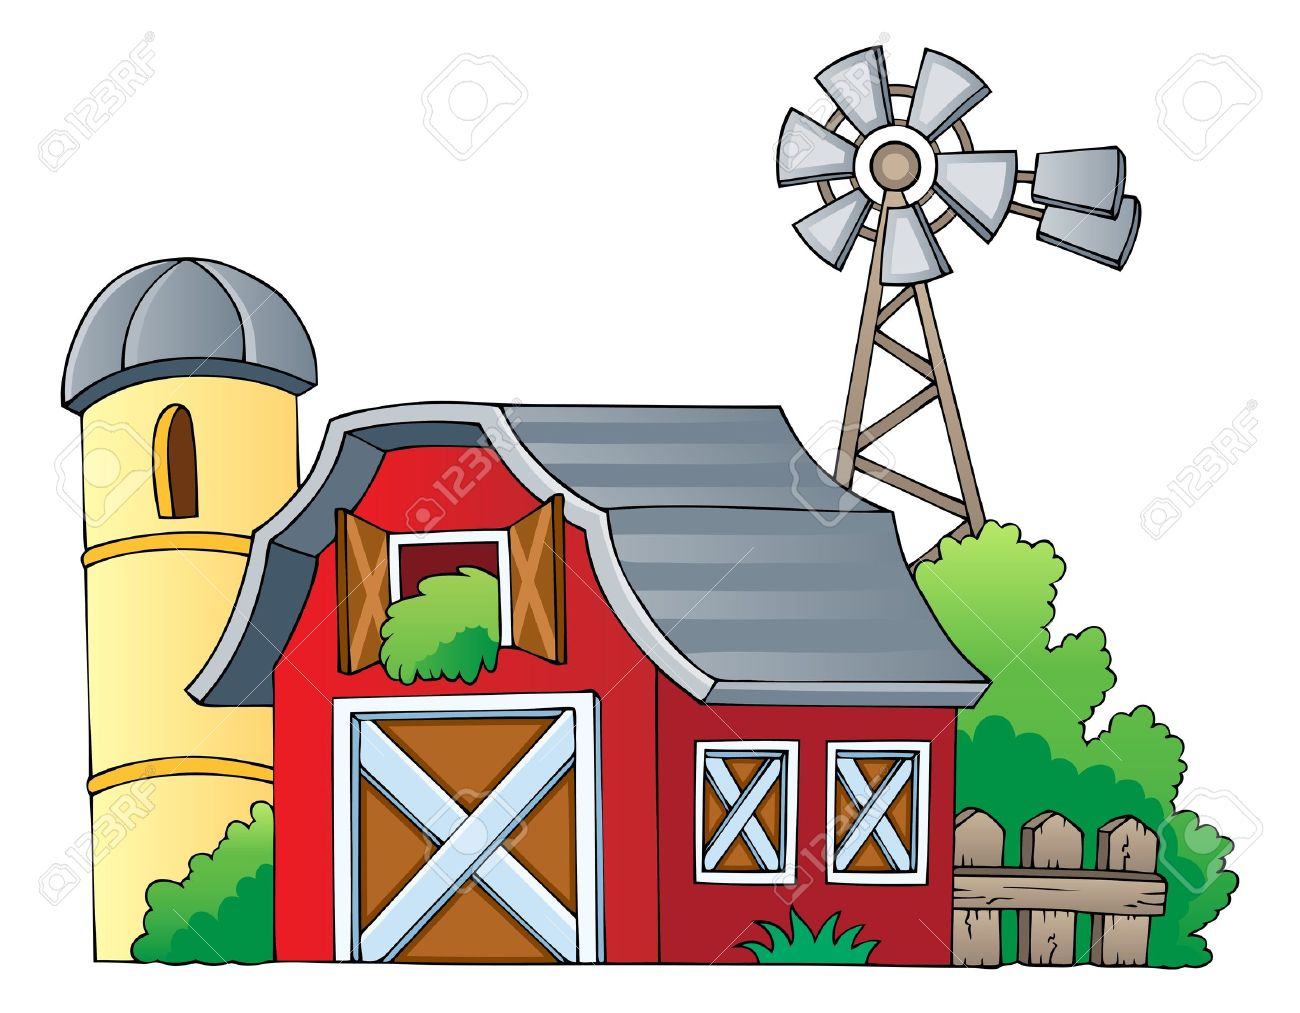 Farm theme image 1 - vector illustration Stock Vector - 13356125